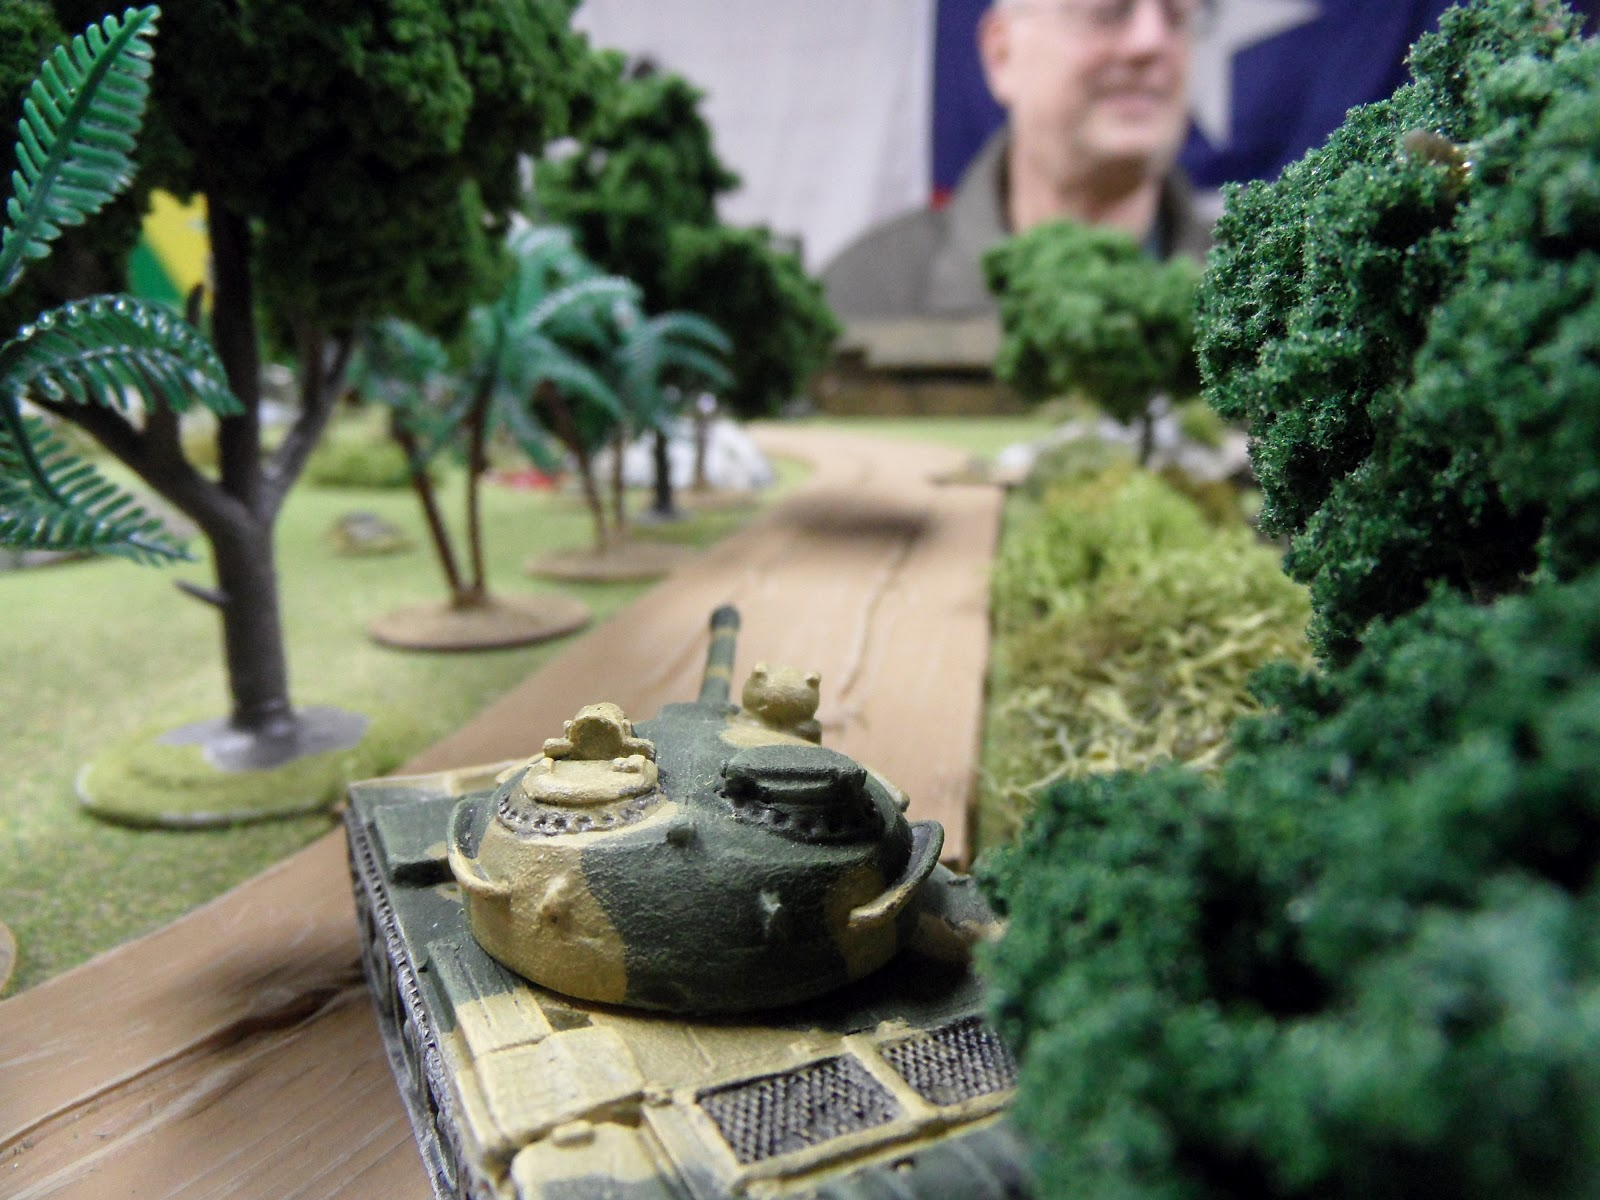 The T-55 spots the troublesome technical near the sawmill and takes a very difficult shot...